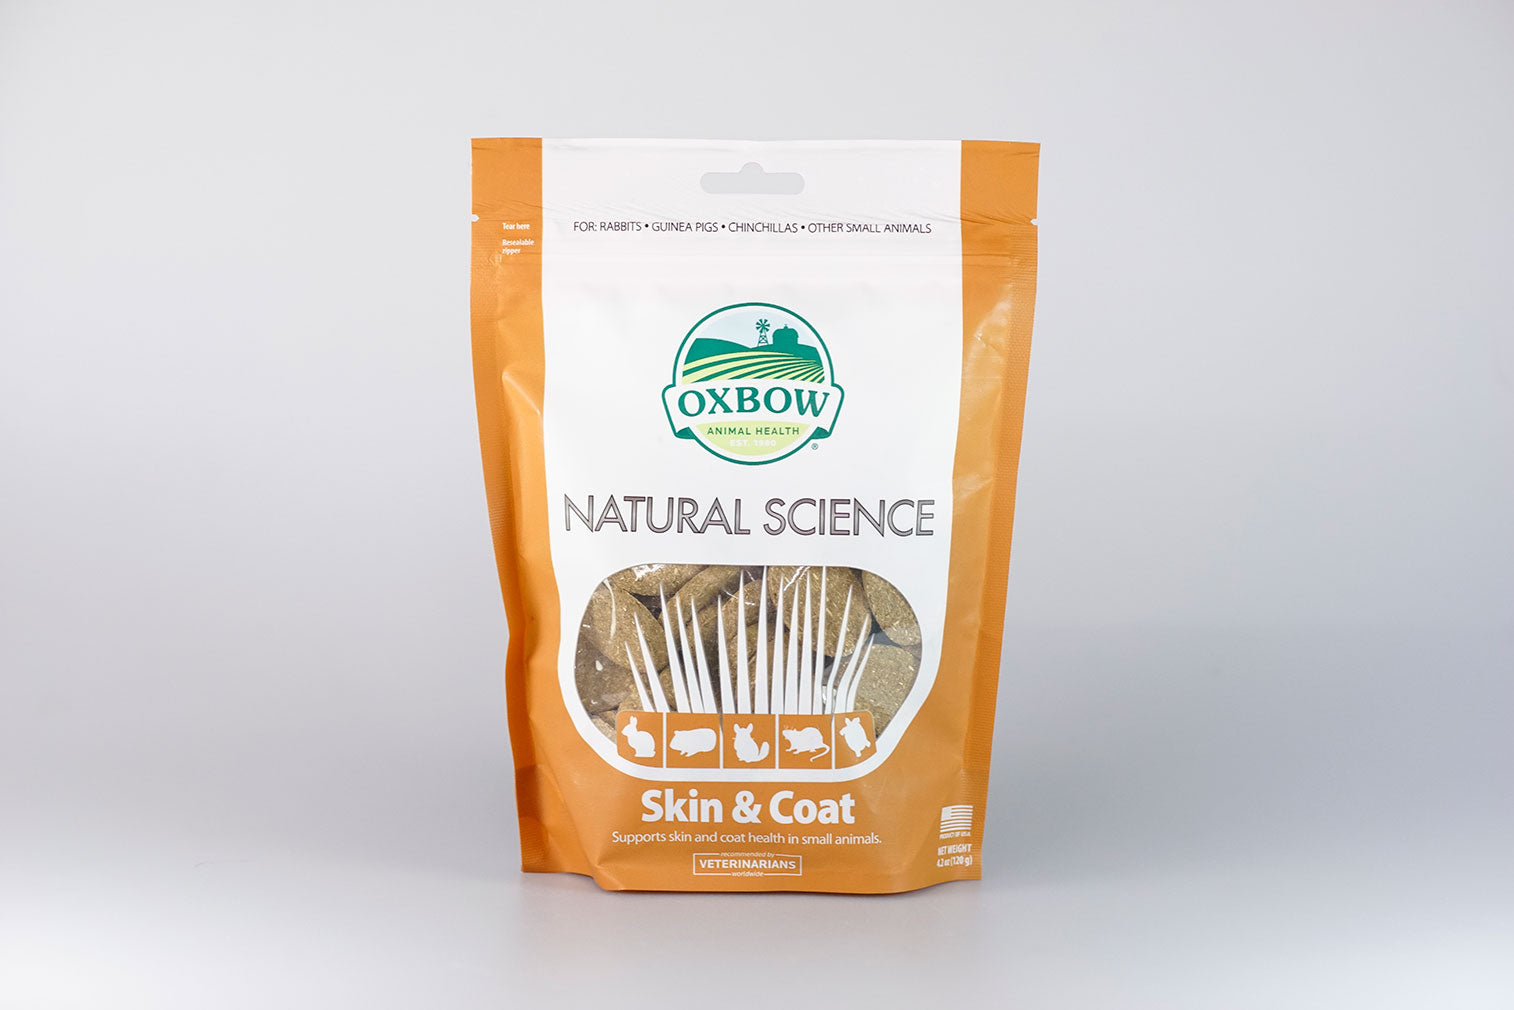 Oxbow Natural Science Skin & Coat 120g